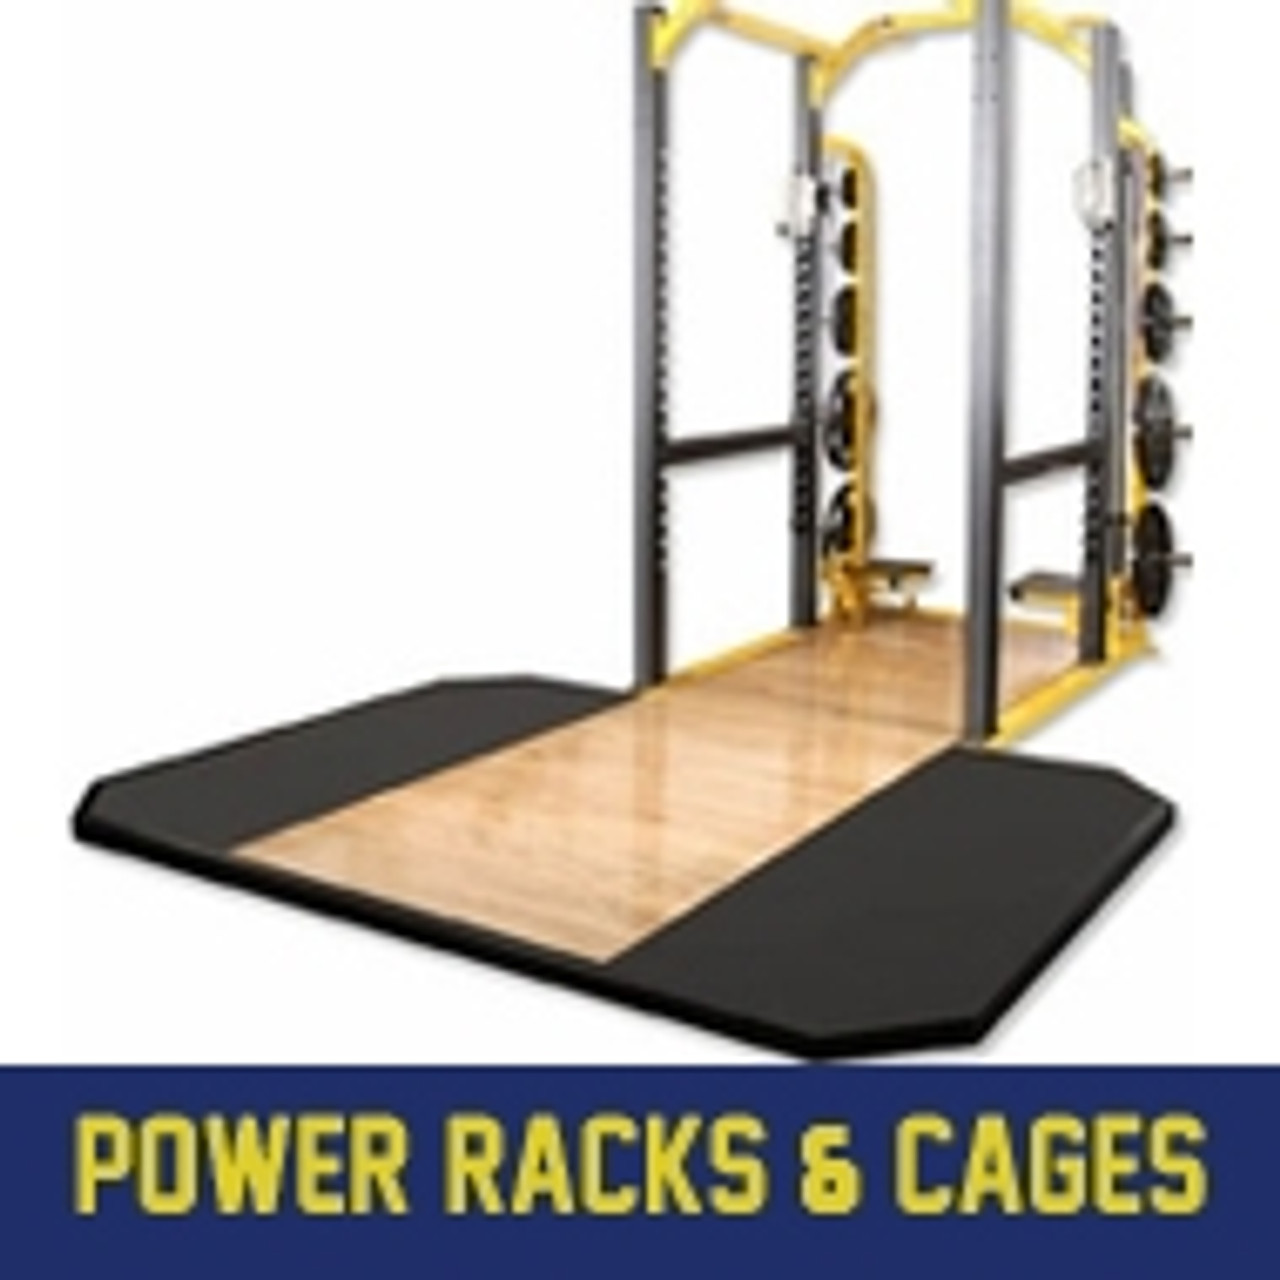 Racks & Cages